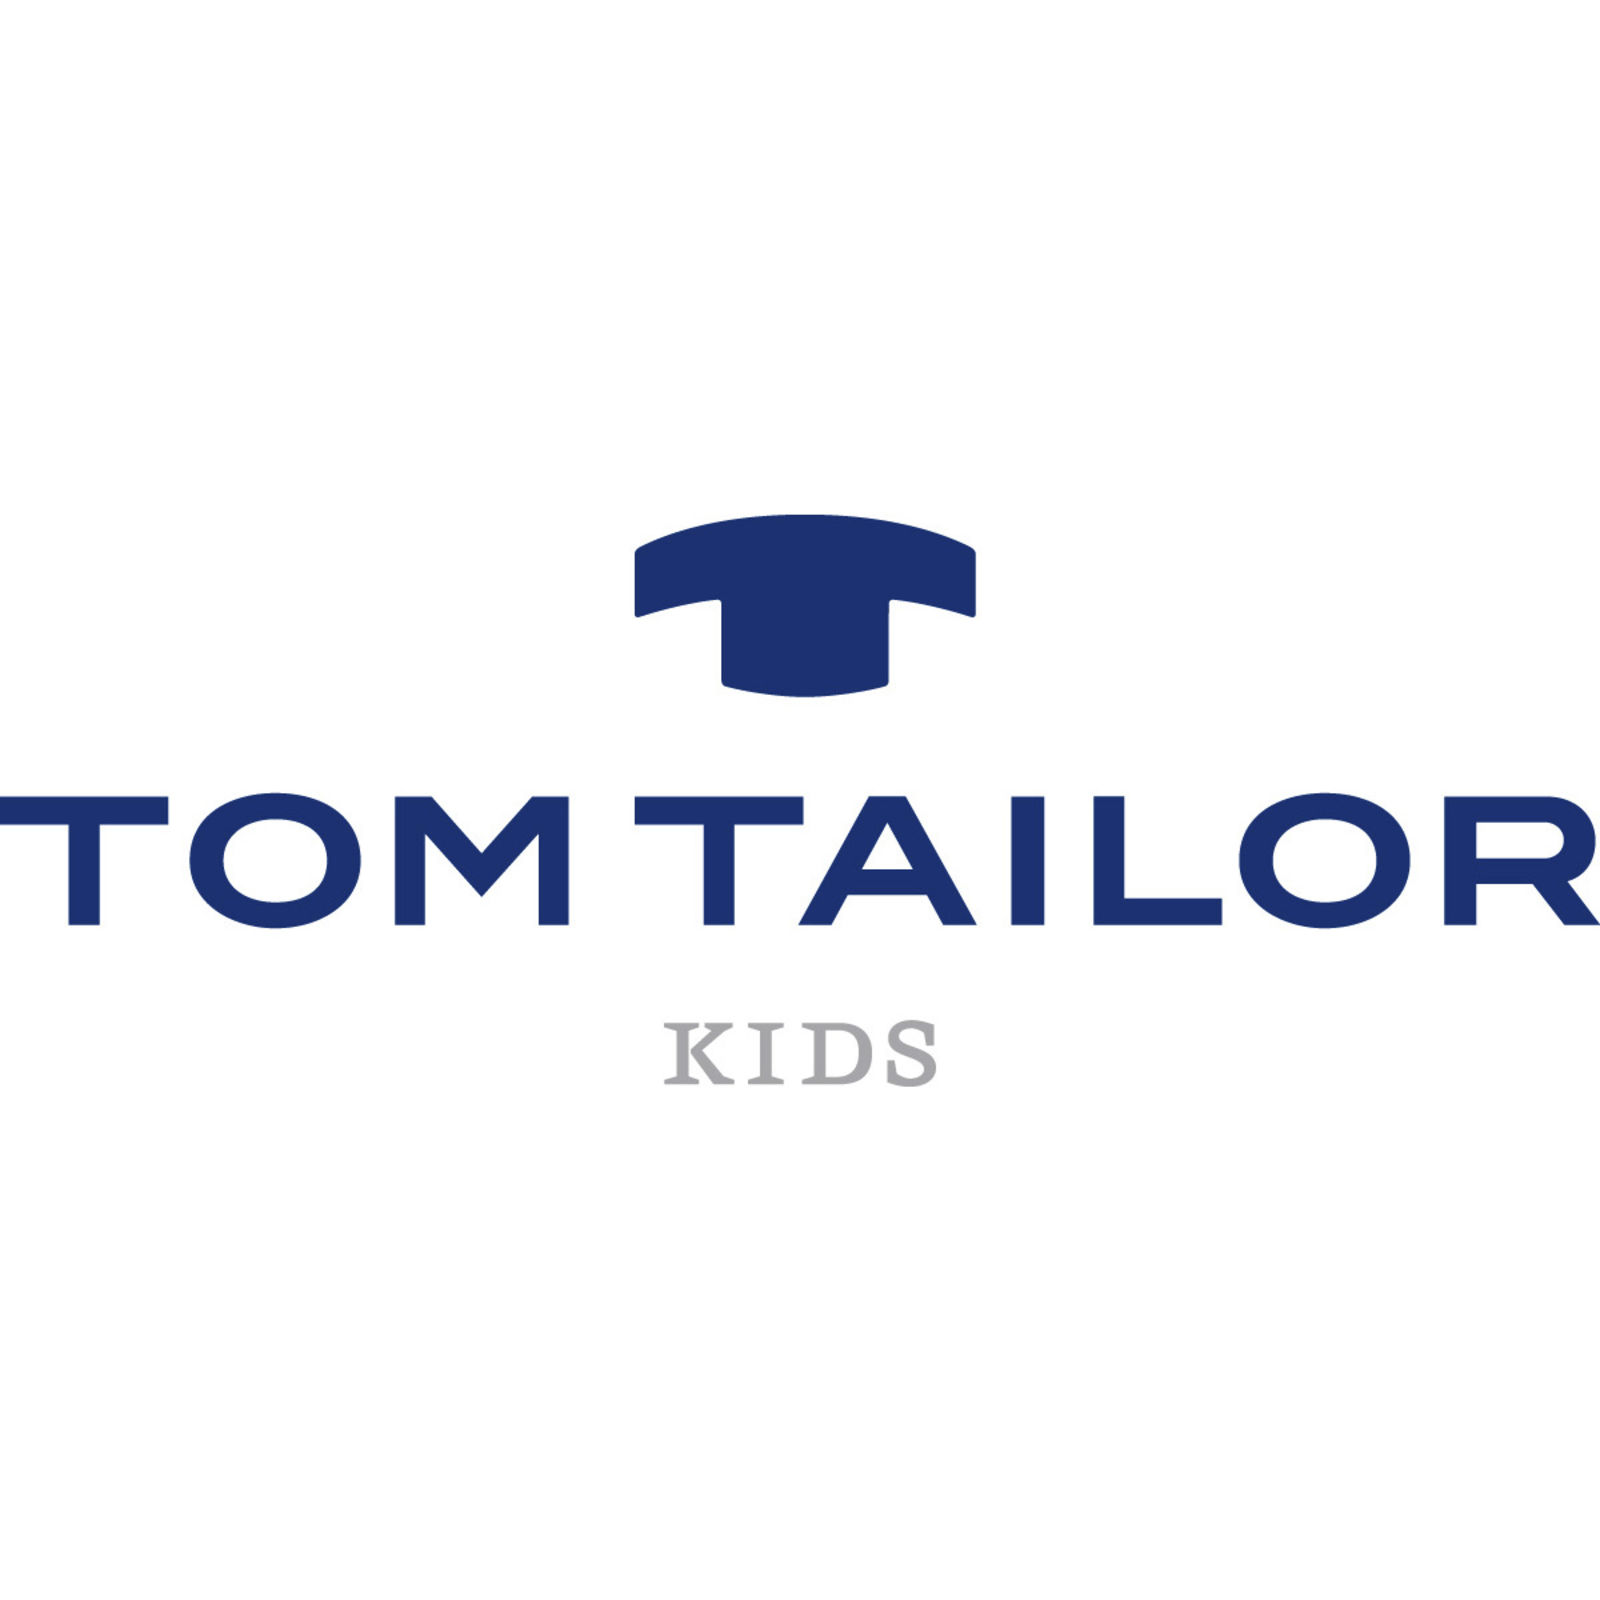 TOM TAILOR Kids (Bild 1)